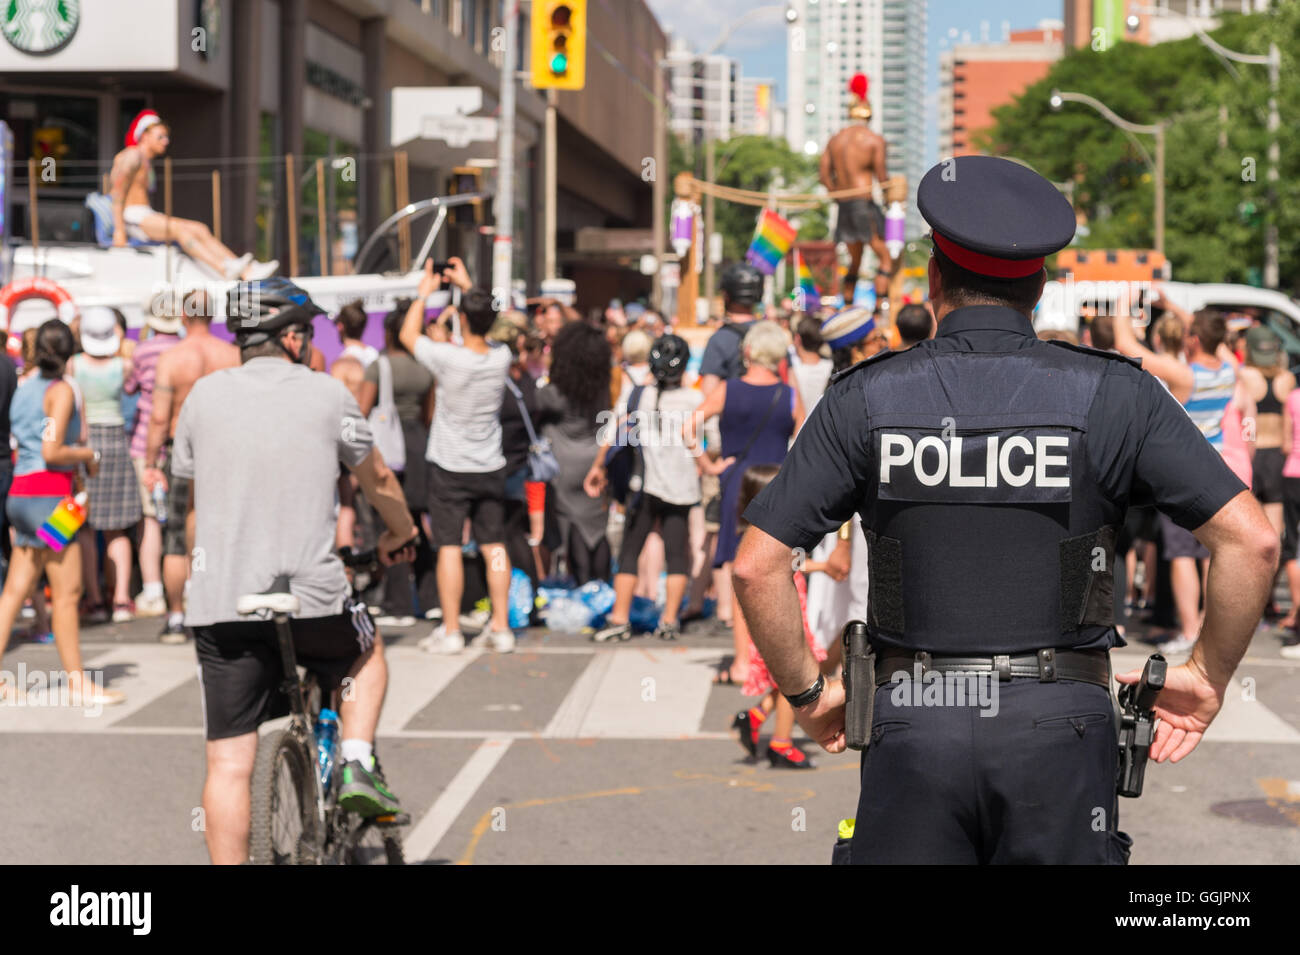 Toronto, CA - 3 July 2016: A policeman is watching the gay pride parade in Toronto, Canada. - Stock Image